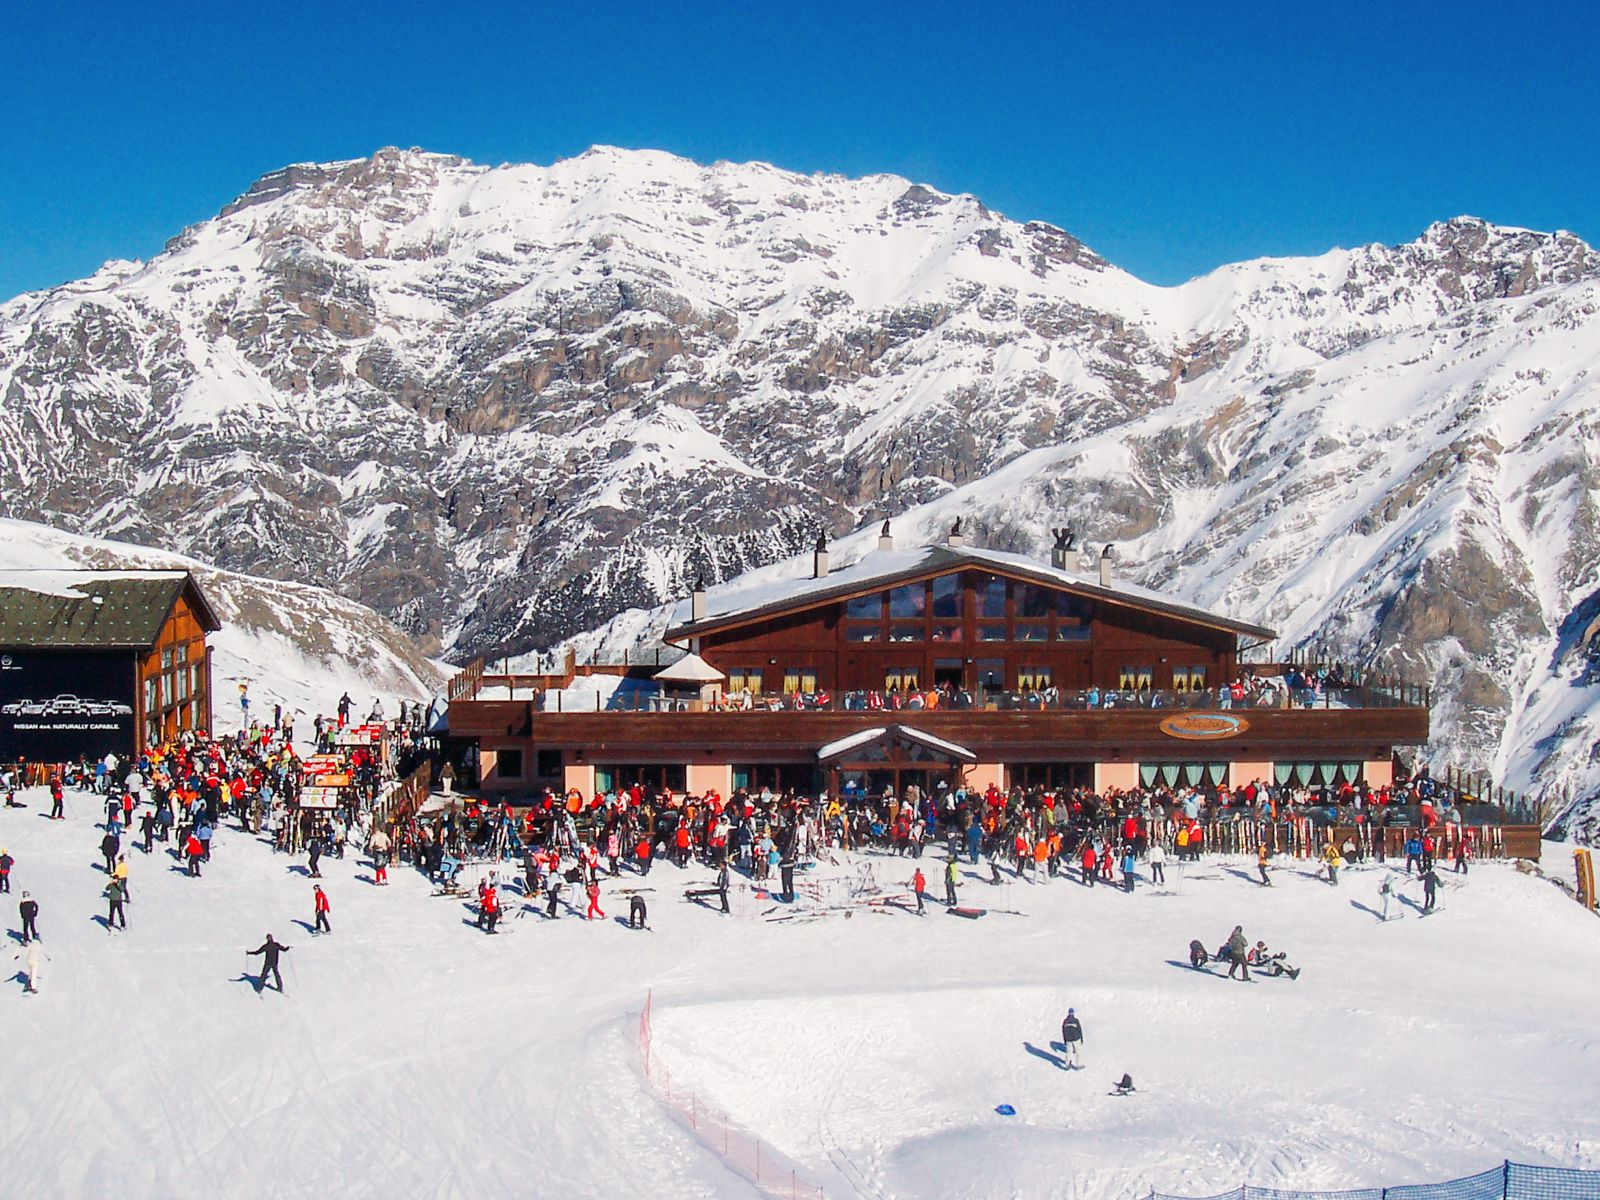 9 of the best ski resorts to visit in europe's alps - hand luggage